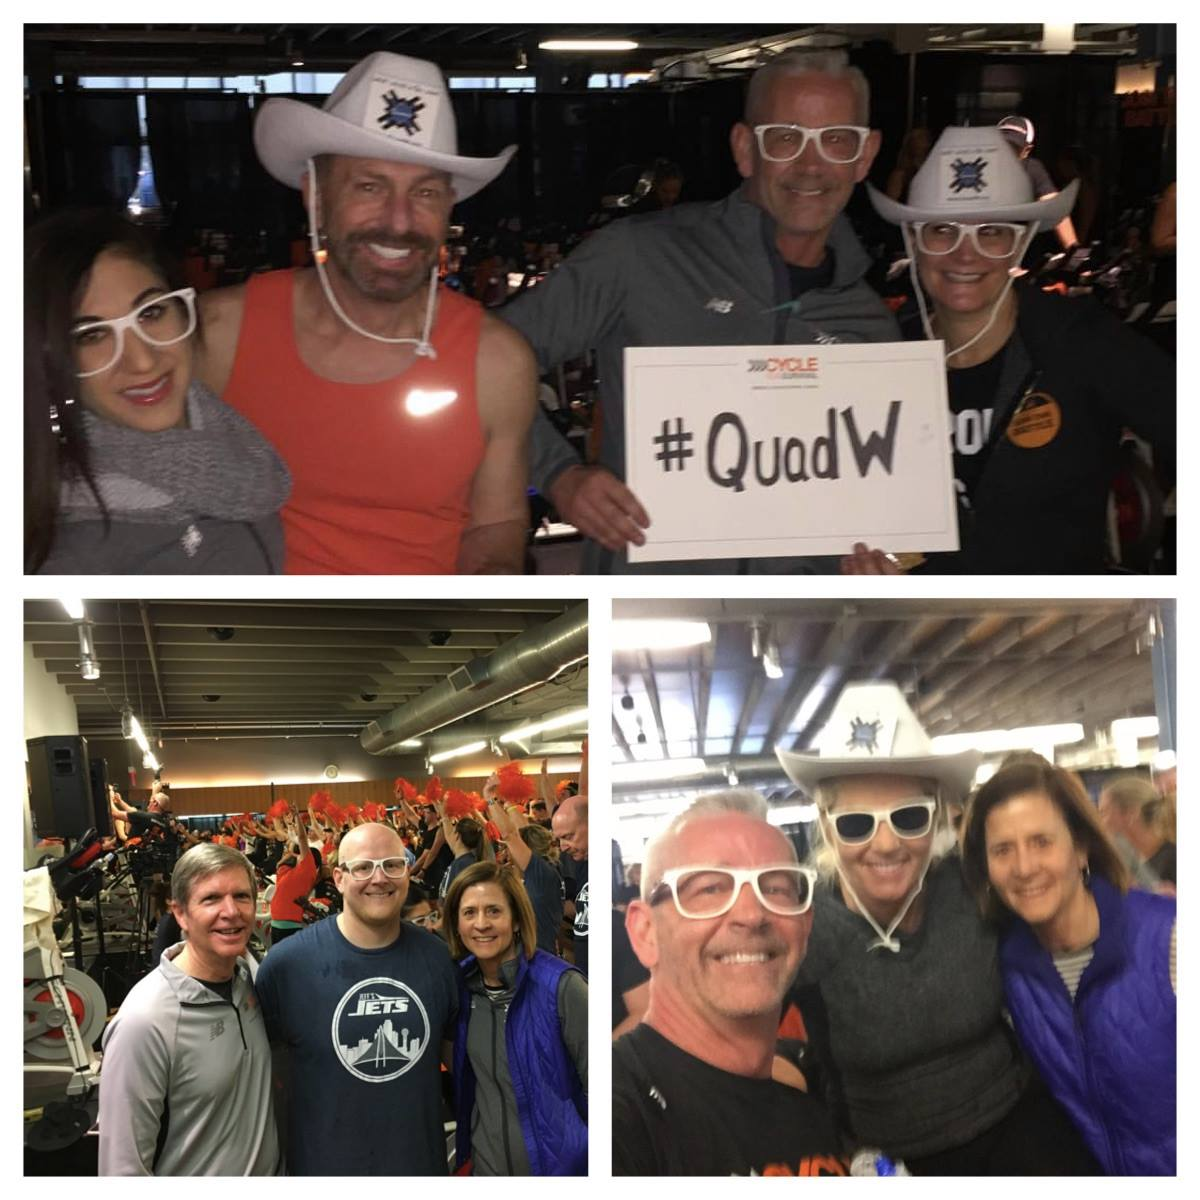 quadw cycle for survival